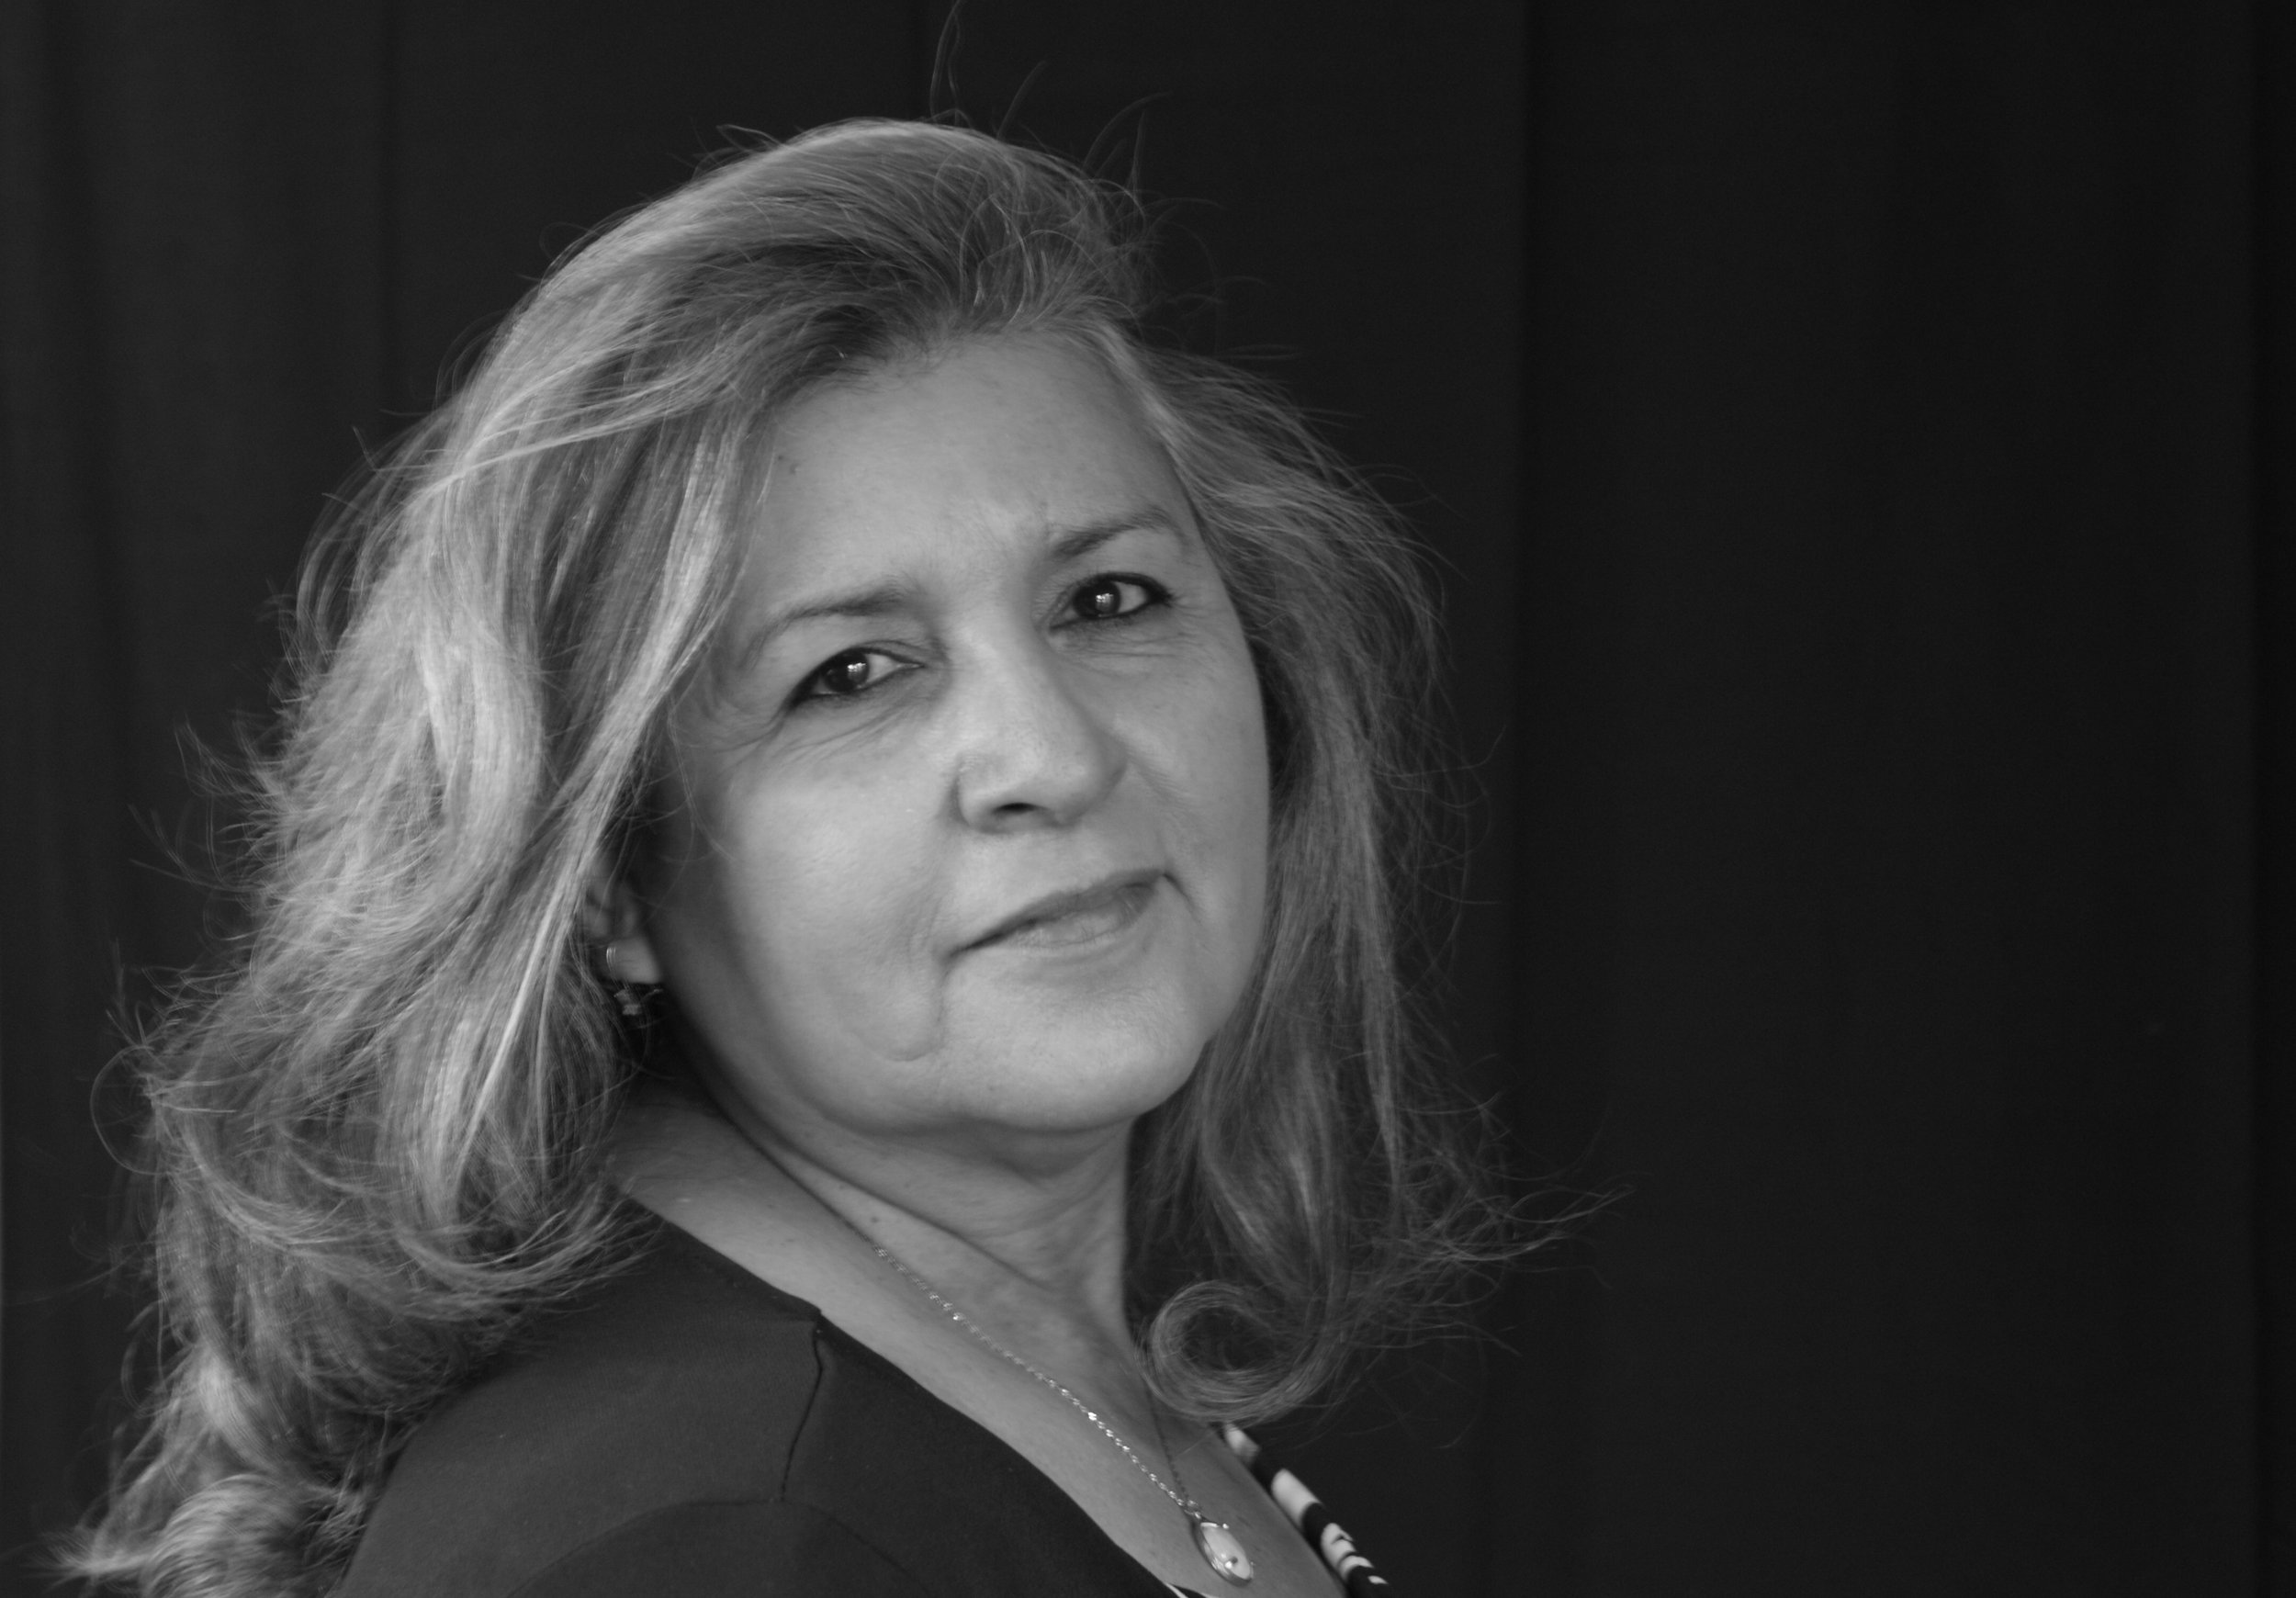 - Melody Trevino is the organization's Bilingual Case Manager. She has been with IFM since August 2006 and has more than 13 years of experience with client assistance and referrals. Melody works with direct client assistance and oversees volunteer caseworkers.